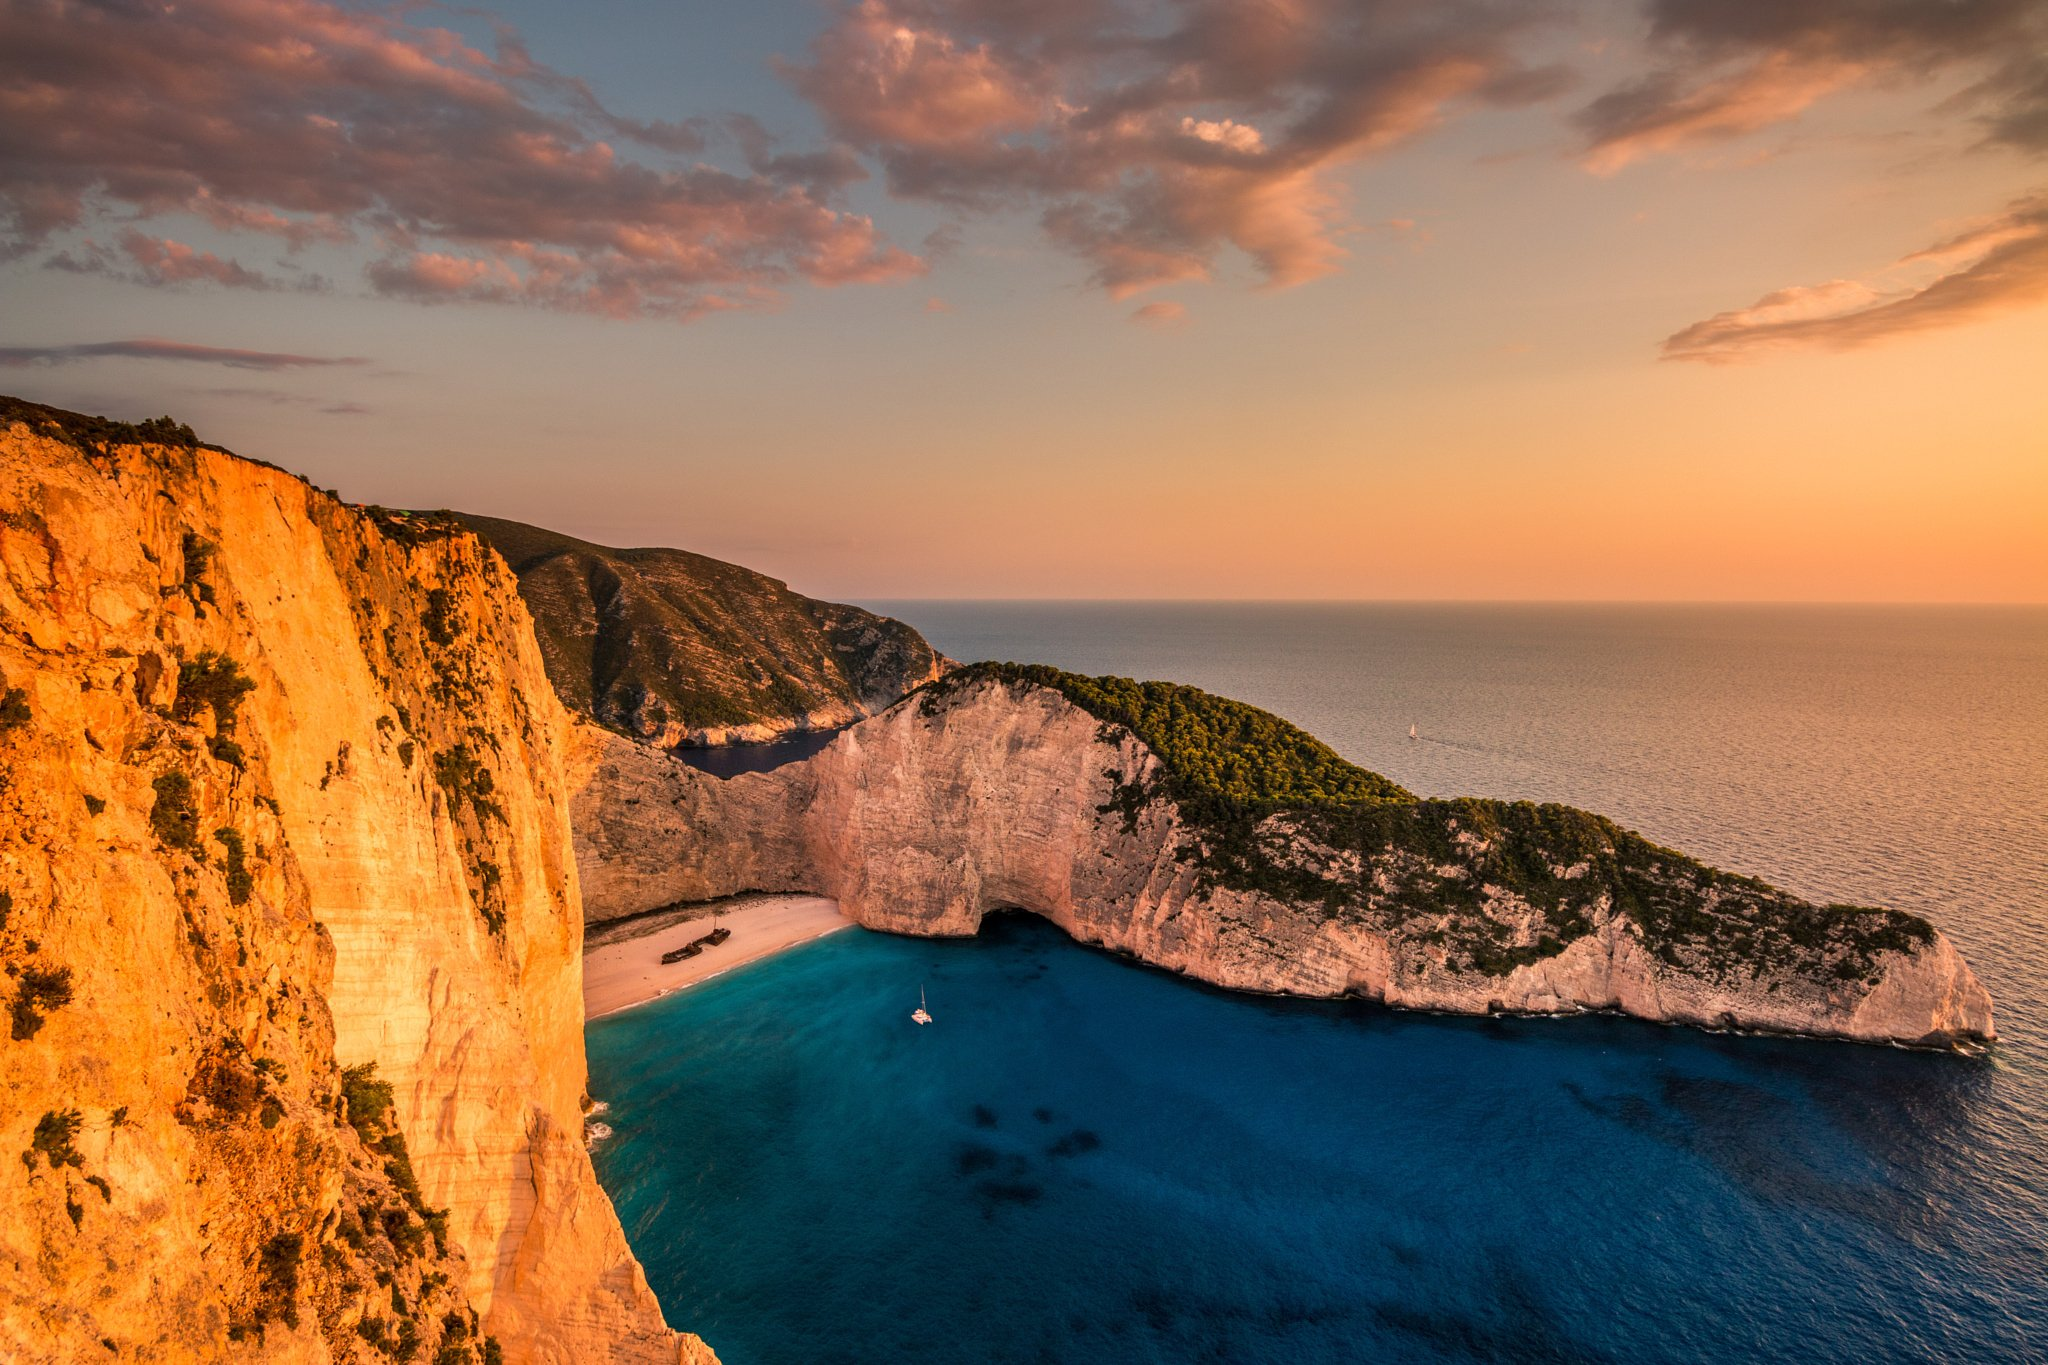 Shipwreck Bay In Zakynthos During Sunset Navagio Beach Greece Wallpaper